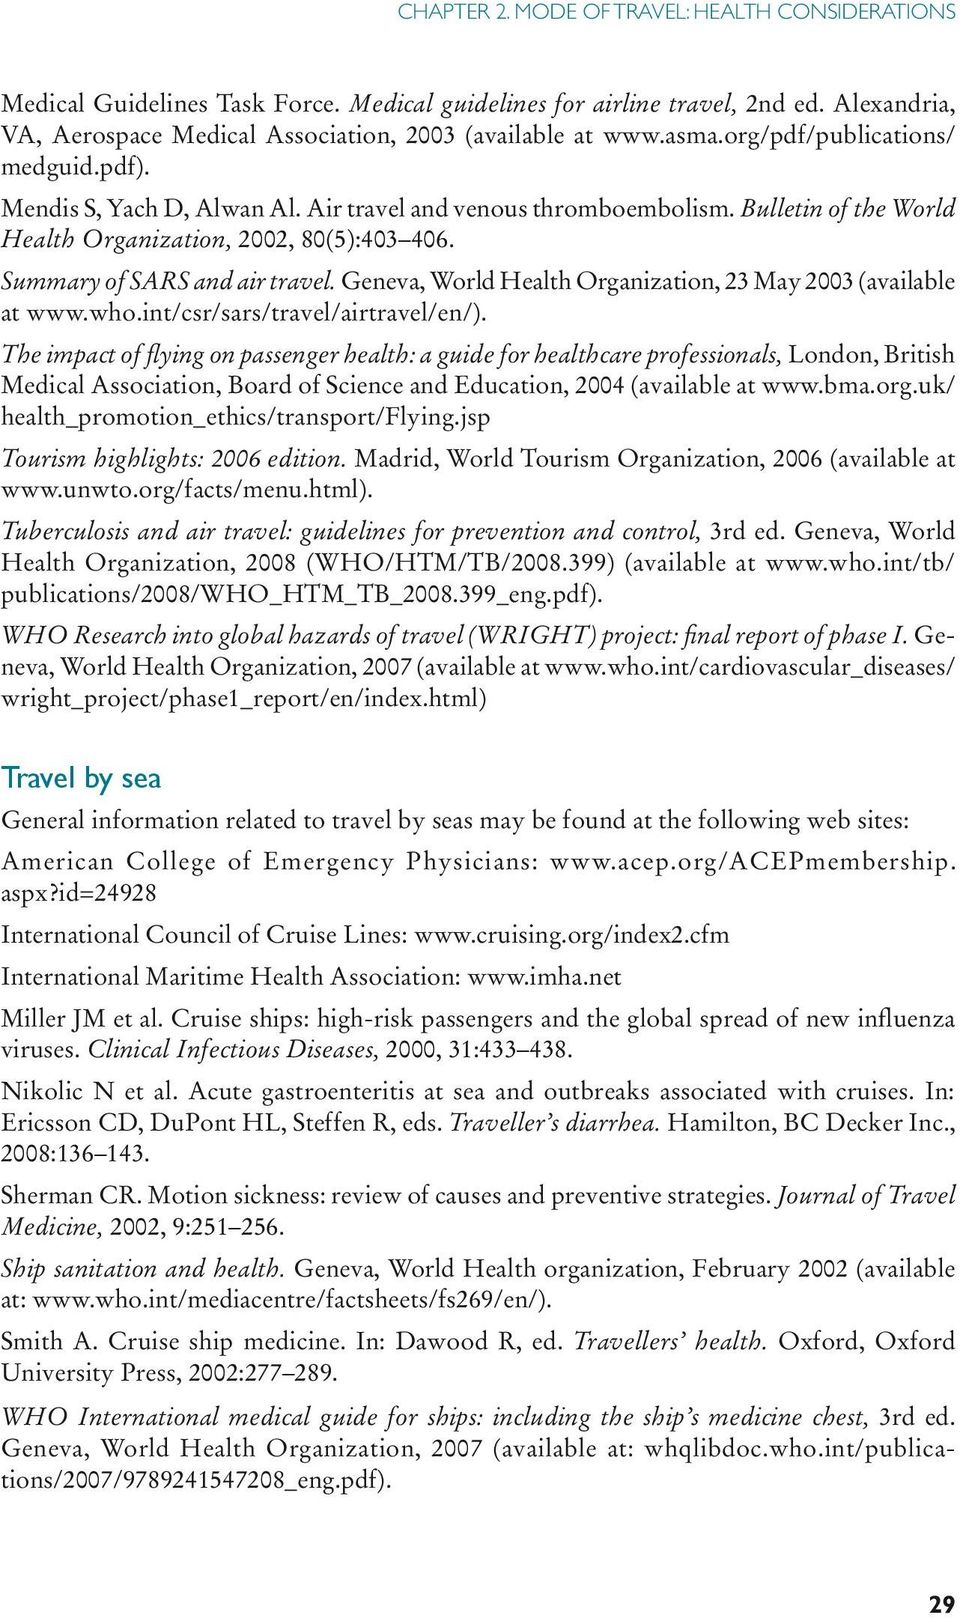 Summary of SARS and air travel. Geneva, World Health Organization, 23 May 2003 (available at www.who.int/csr/sars/travel/airtravel/en/).